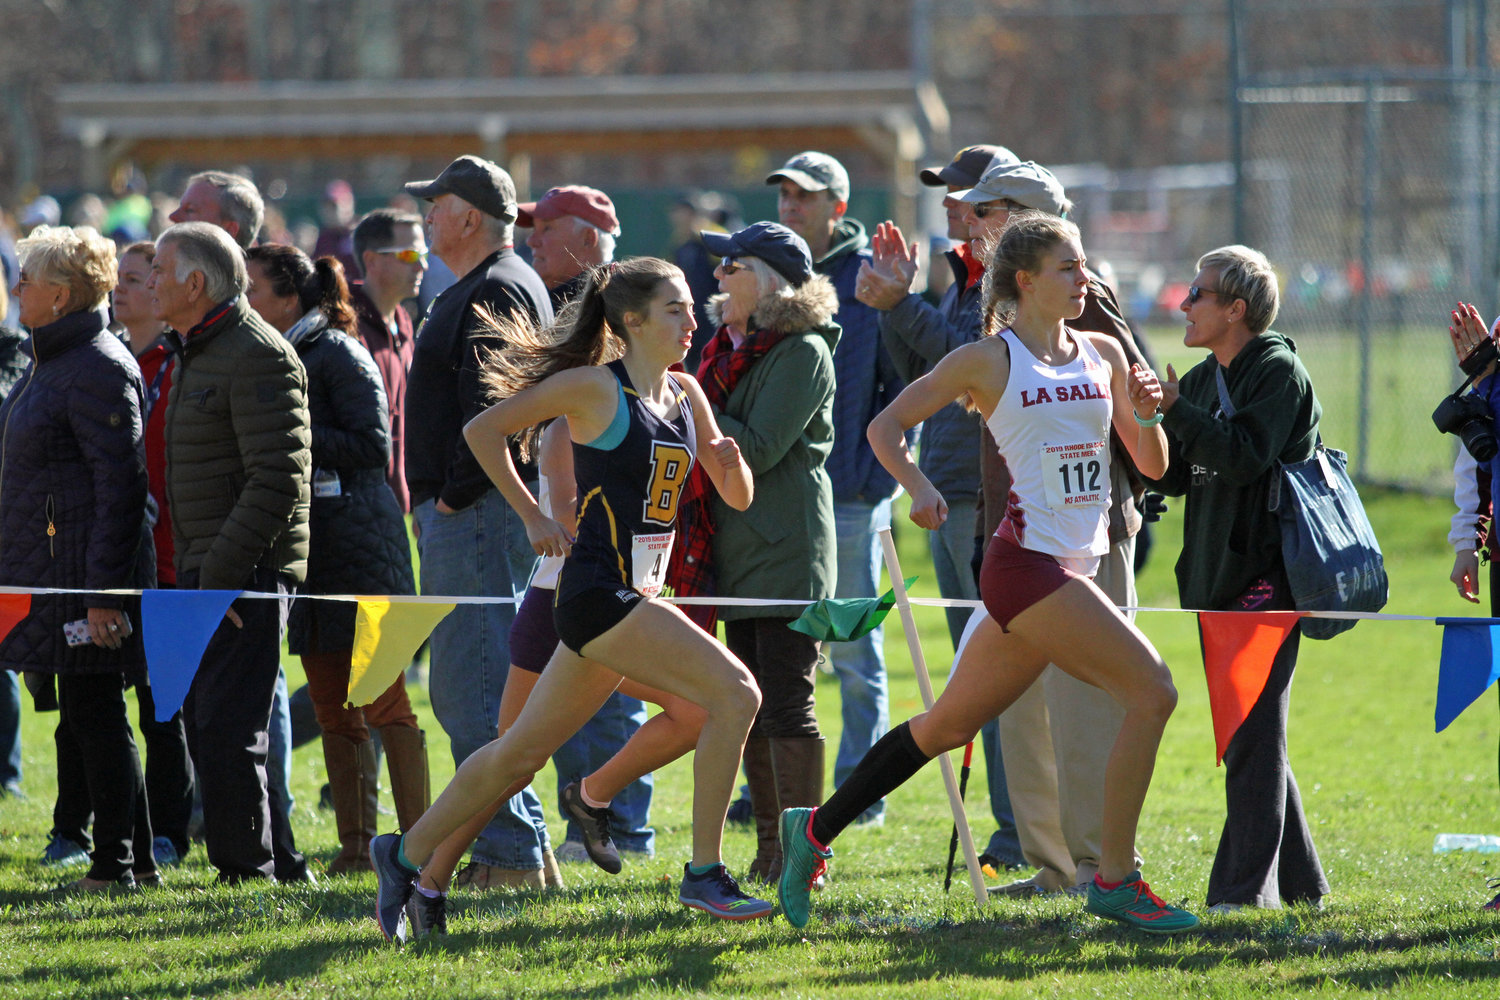 Barrington High School's Caroline Livingston runs a step behind LaSalle's Kayle Armitage during the state cross country meet on Saturday.